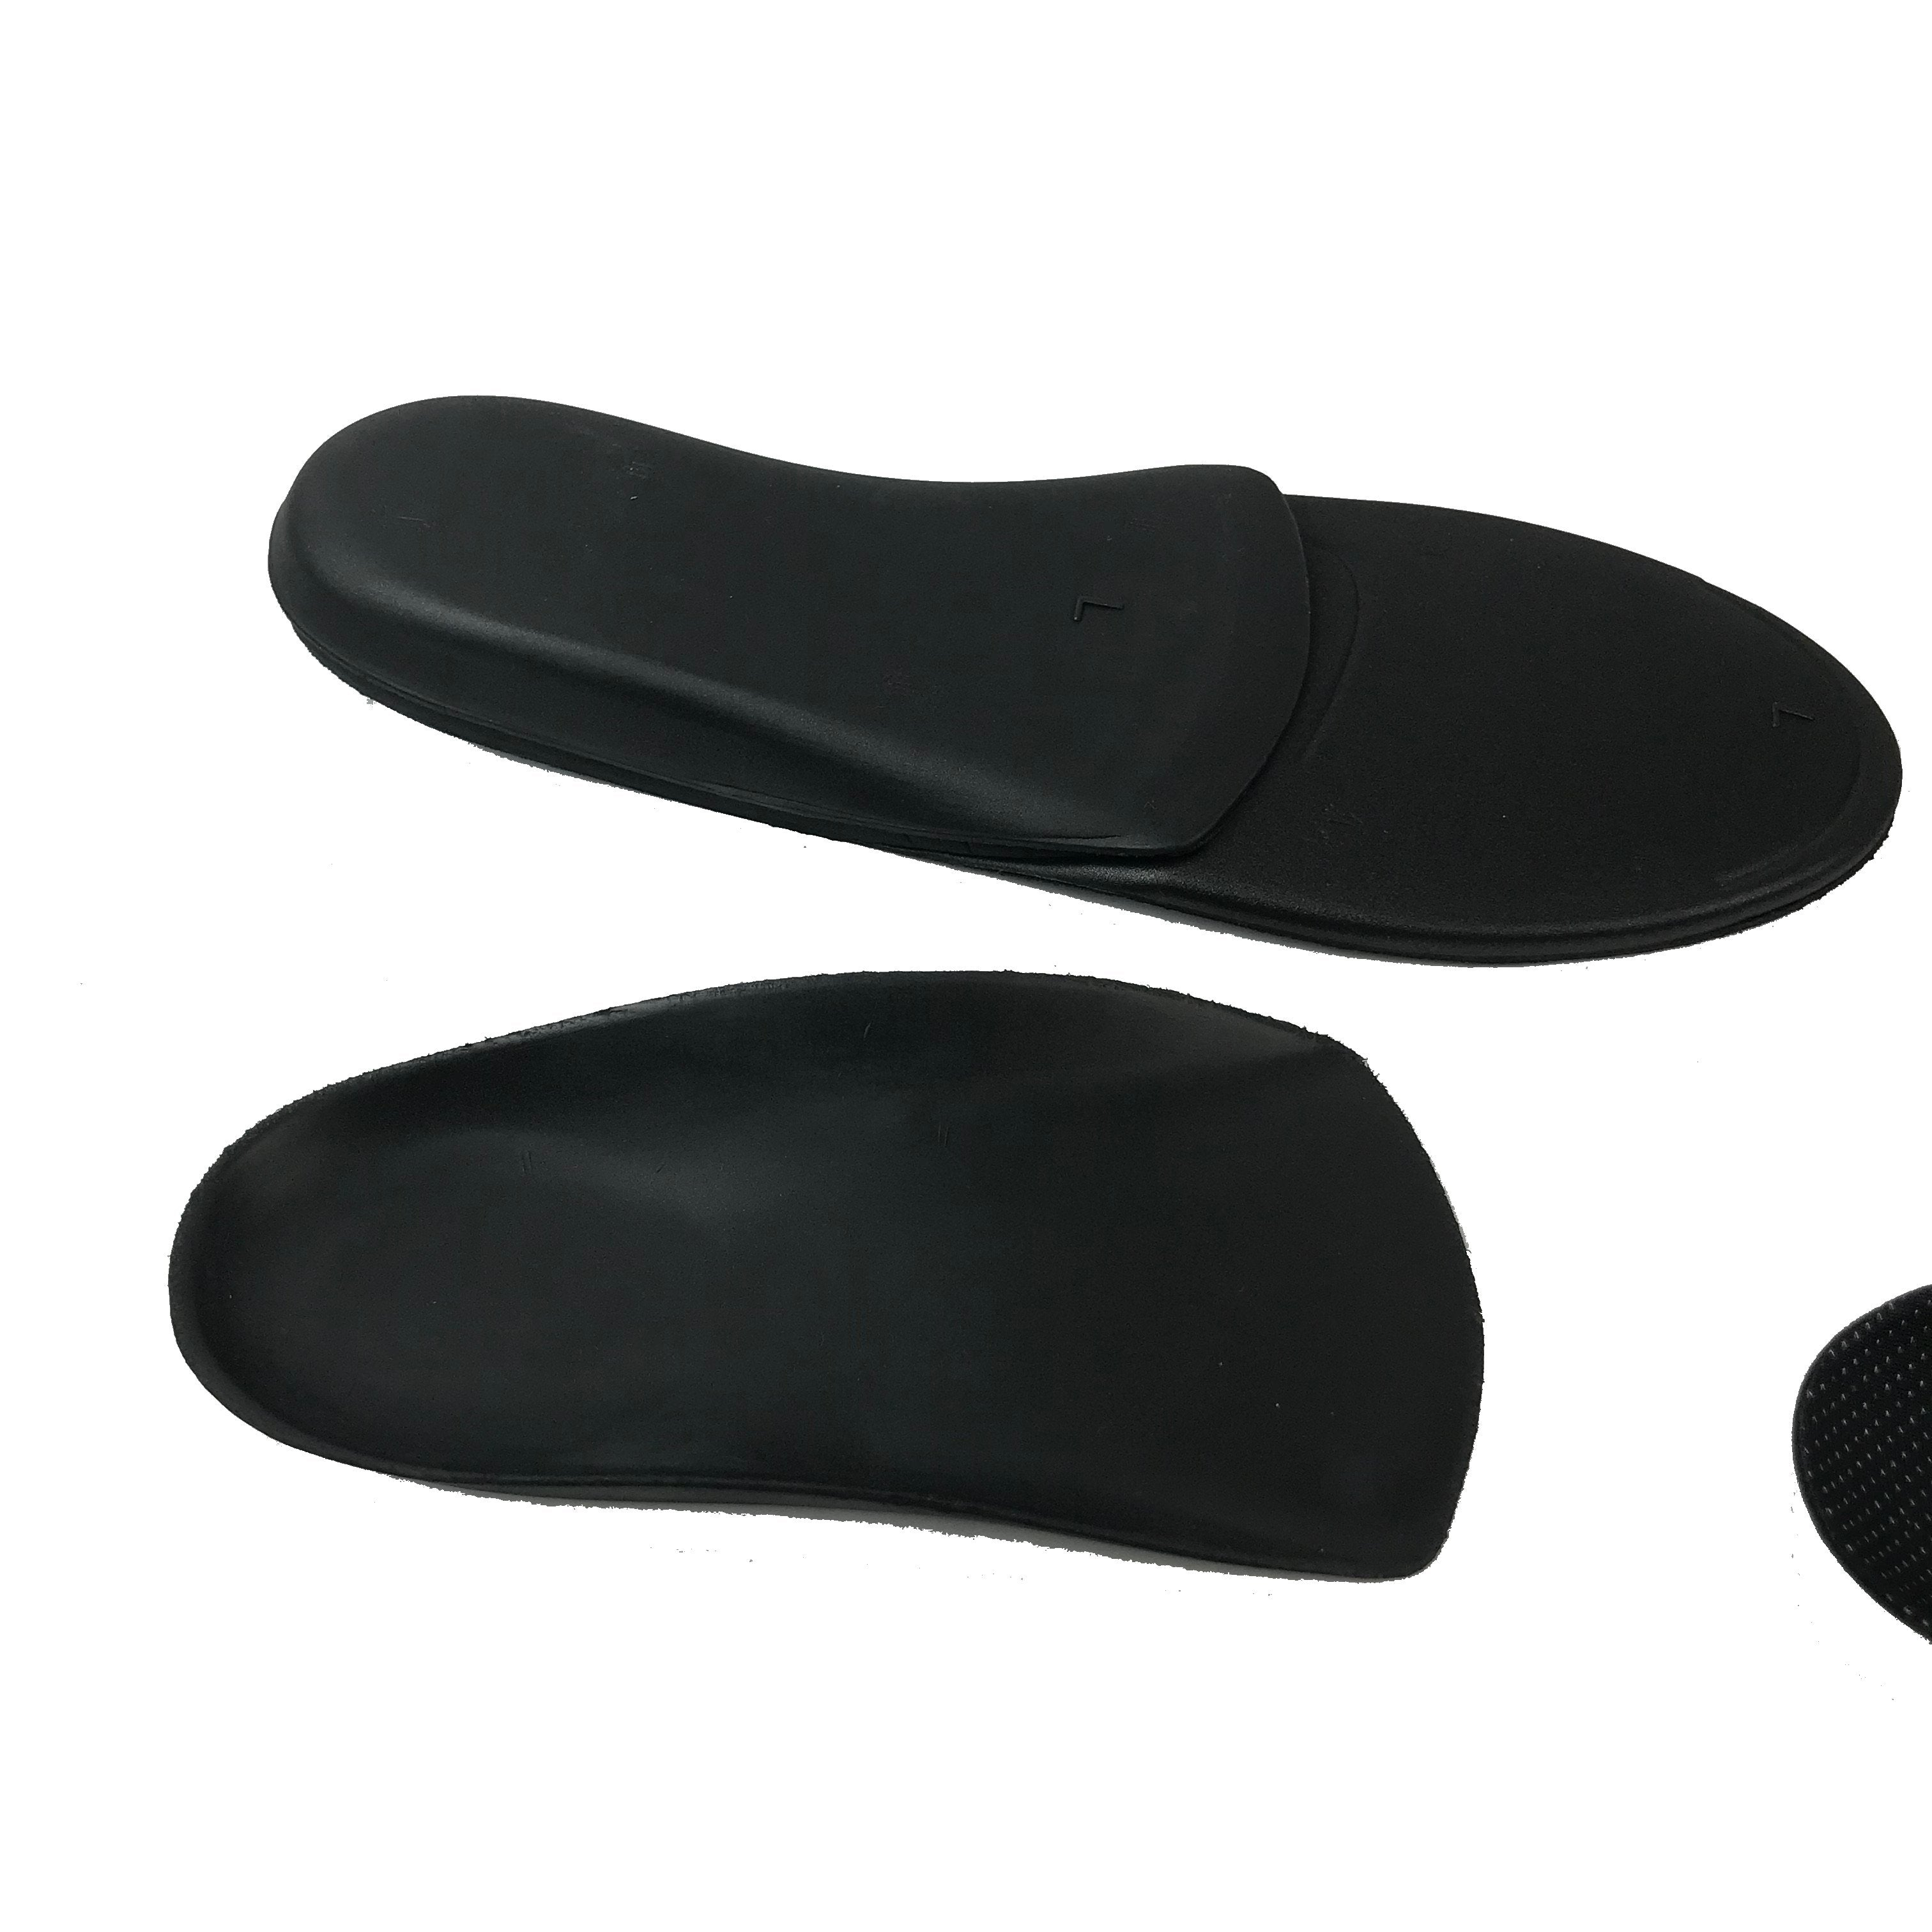 KFG Slim Insole Orthotic Base - Kicks For Gents - Insole - Insole, MADE IN USA